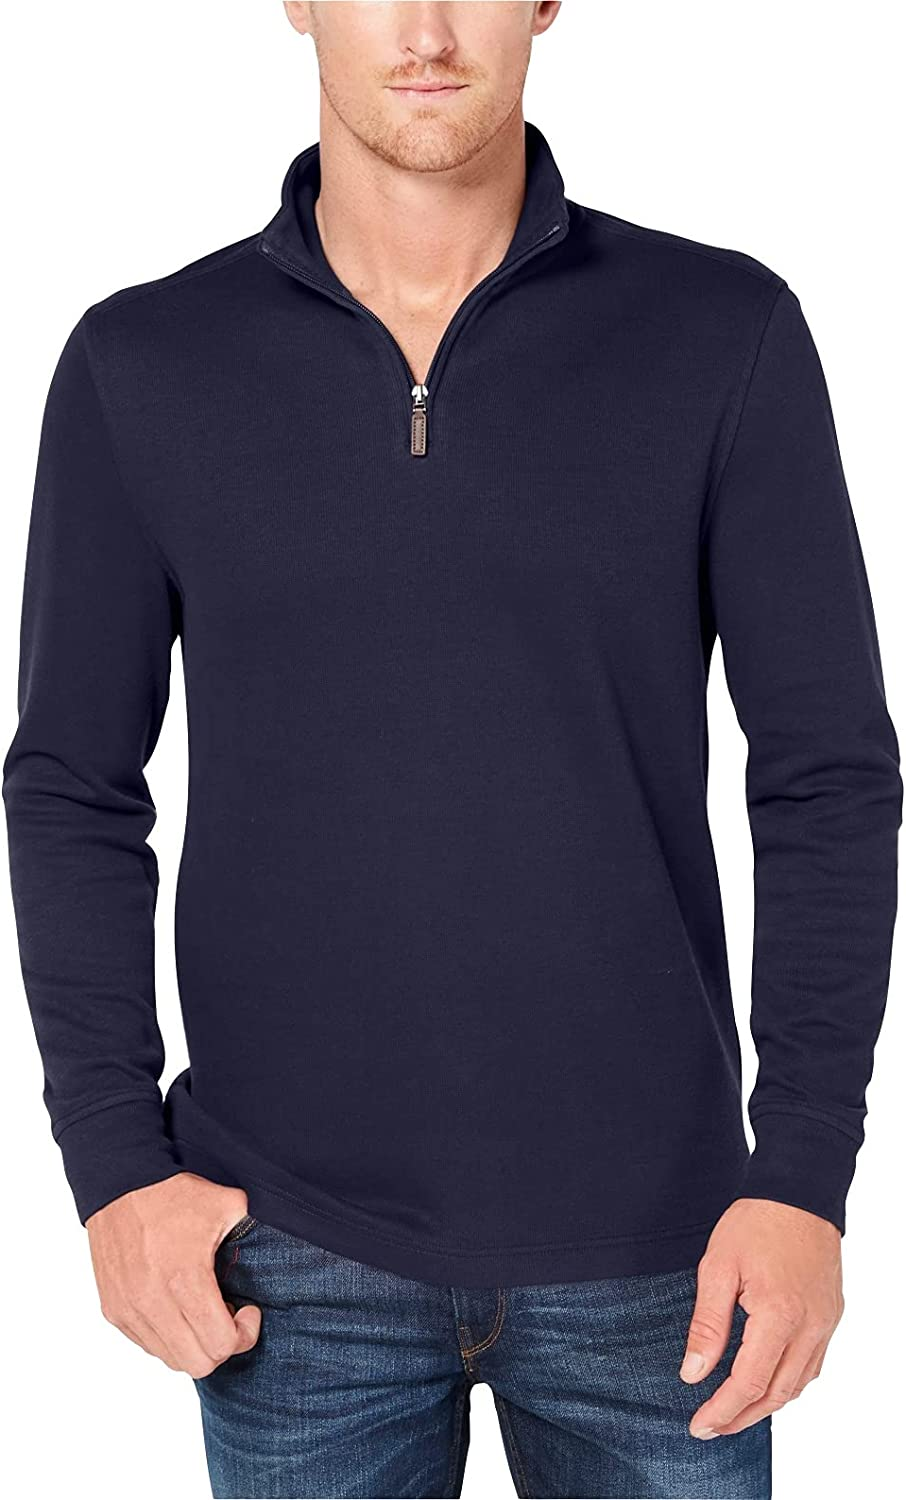 Club Room Mens Sweater Navy Small 1/2 Zip French Ribbed Pullover Blue S